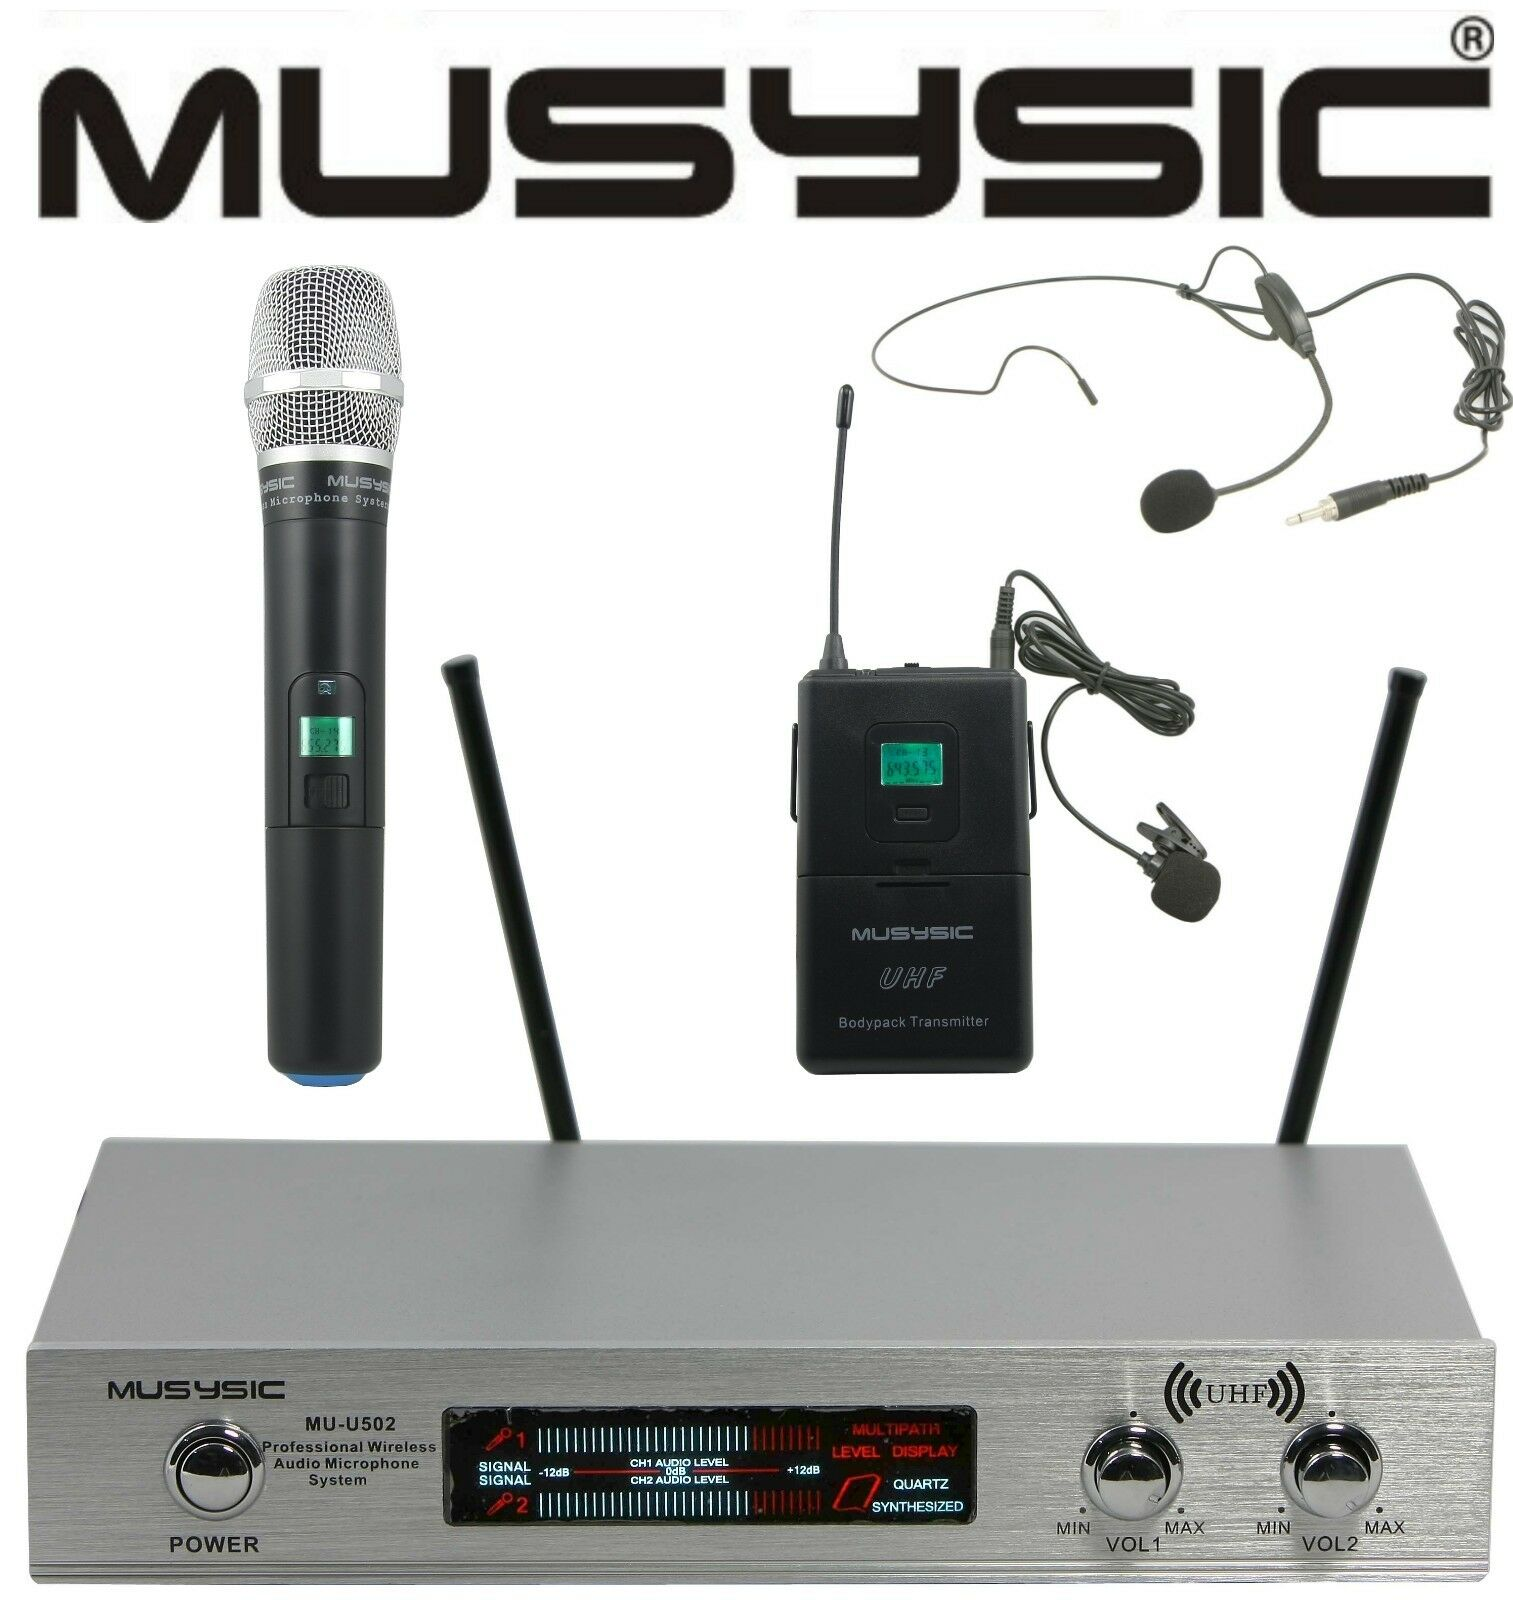 musysic dual channel uhf wireless microphone system w handheld lapel headset. Black Bedroom Furniture Sets. Home Design Ideas